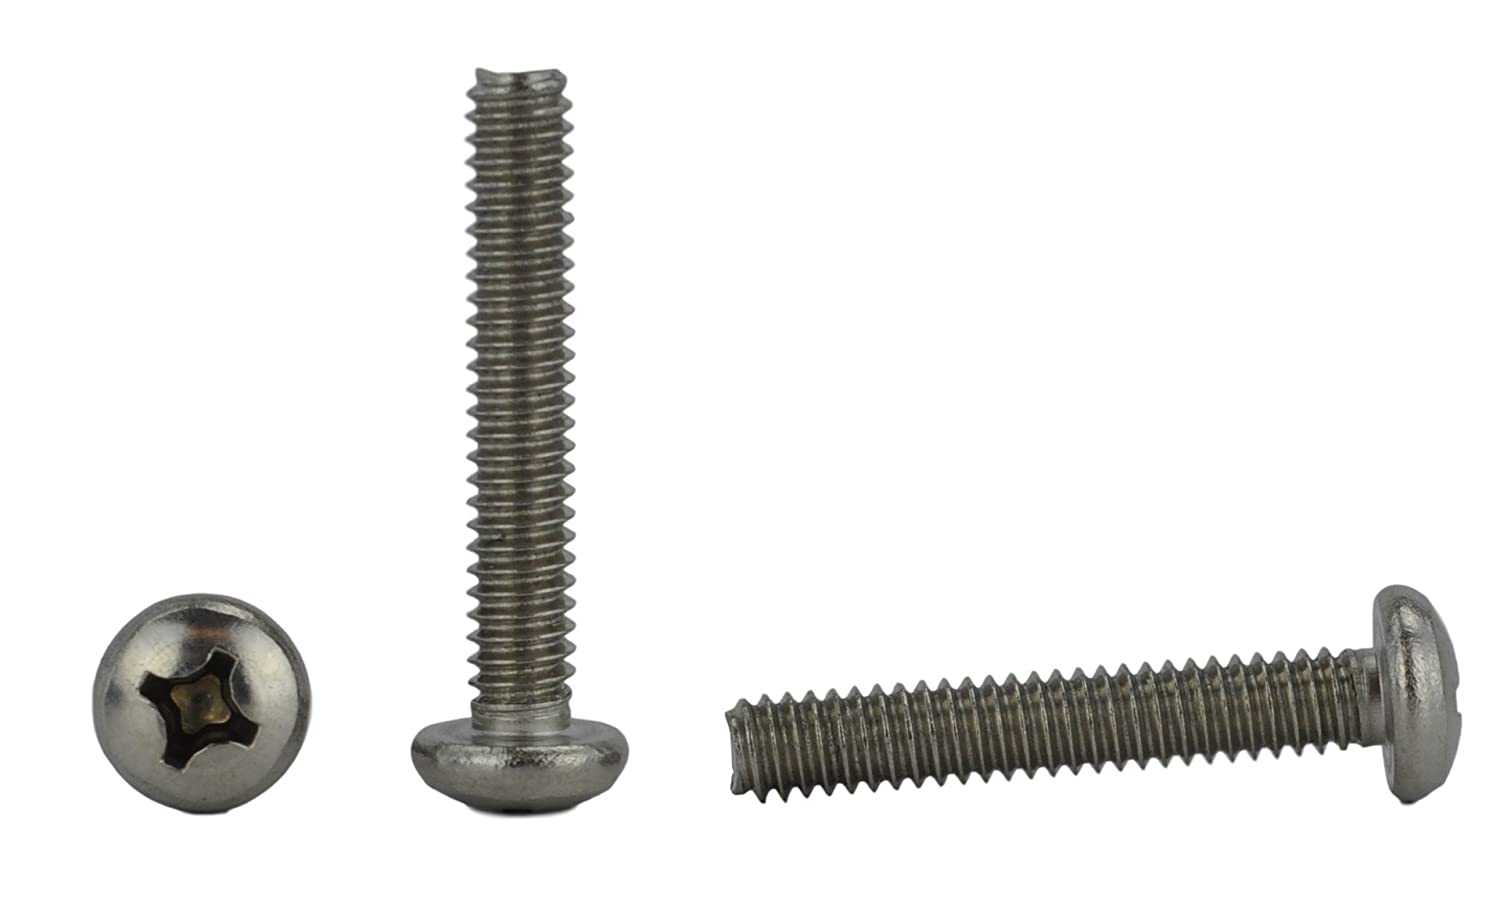 Stainless 1//4-20 x 3 1//4-20 x 3 1//2 to 3 Lengths Available Stainless Steel 18-8 Machine Thread Pan Head Machine Screws Full Thread Phillips Drive